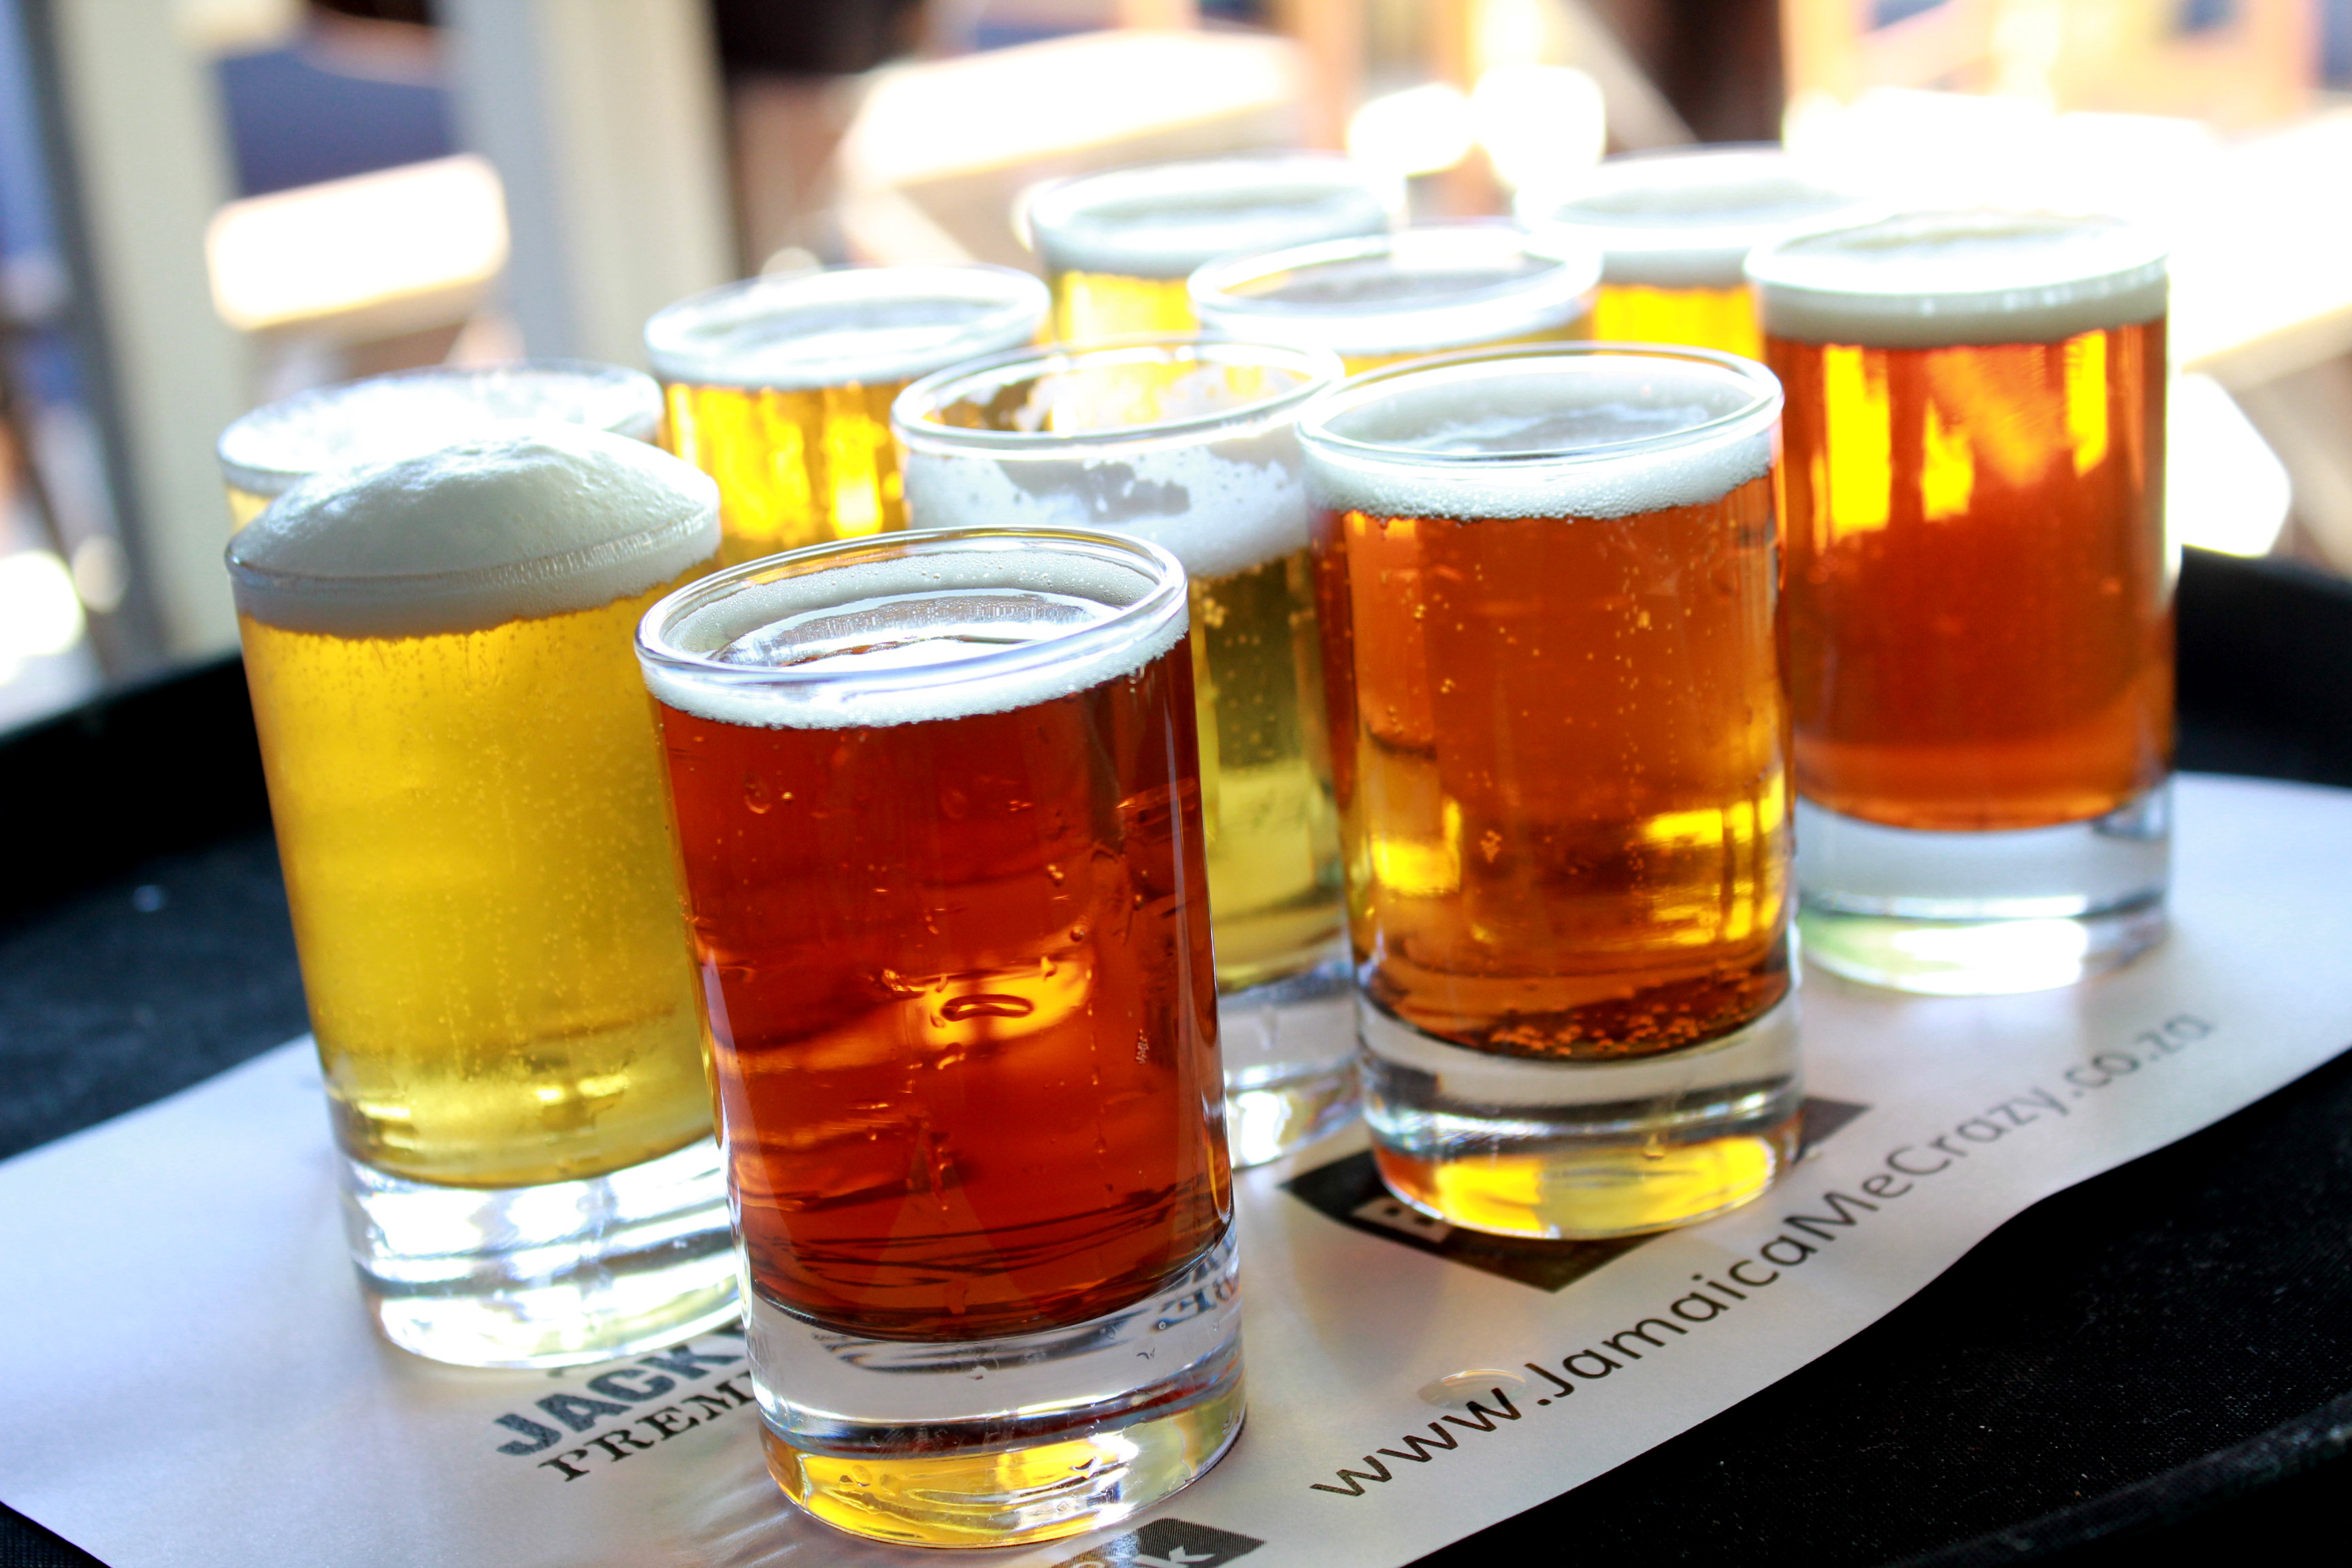 A Beer Lover's Guide To The Best Beer Bars And Breweries In Cape Town photo